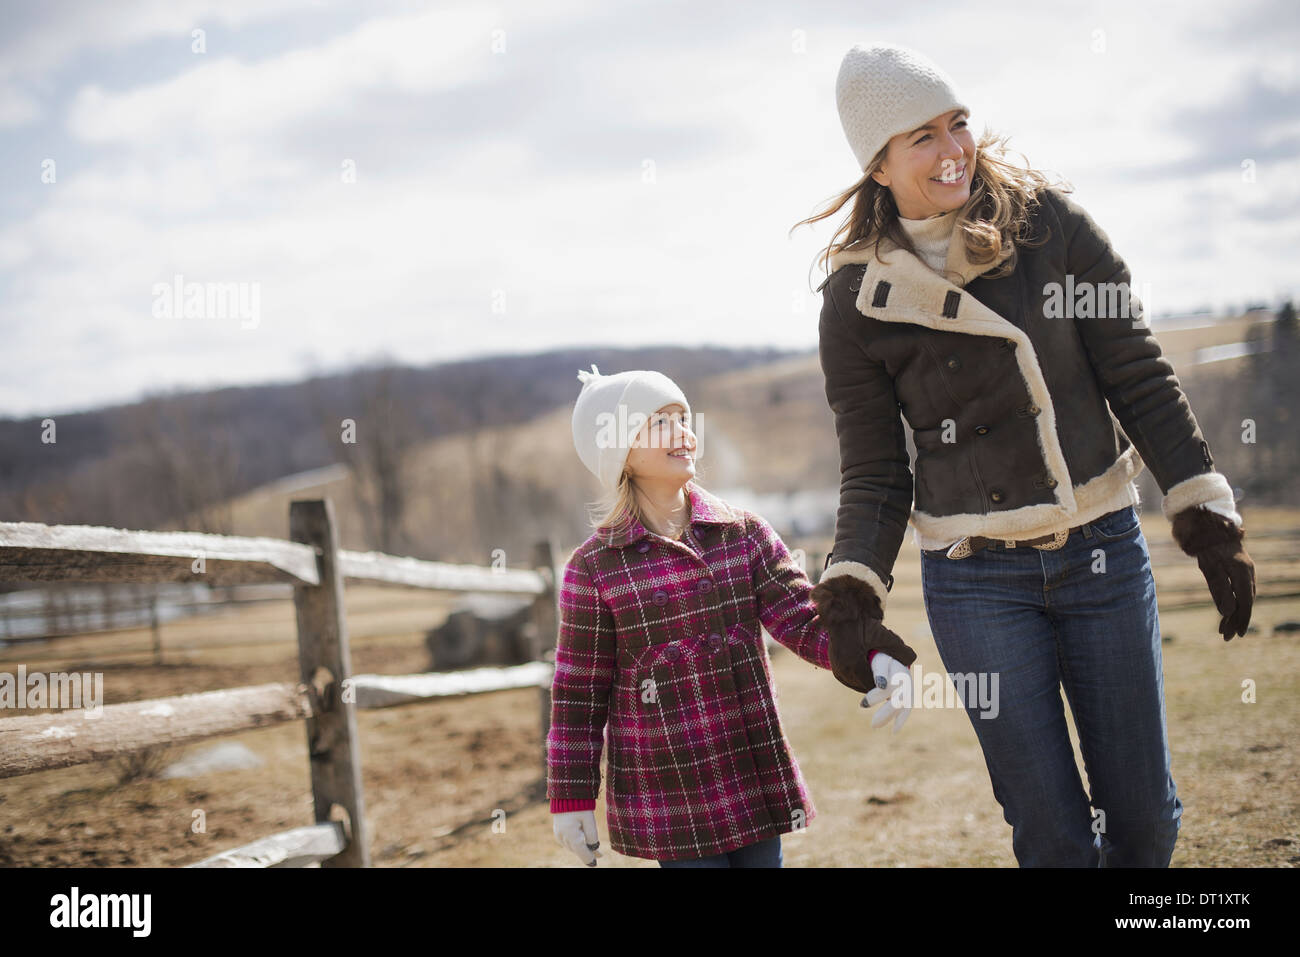 A woman and child walking along a path hand in hand on a farm in spring weather - Stock Image